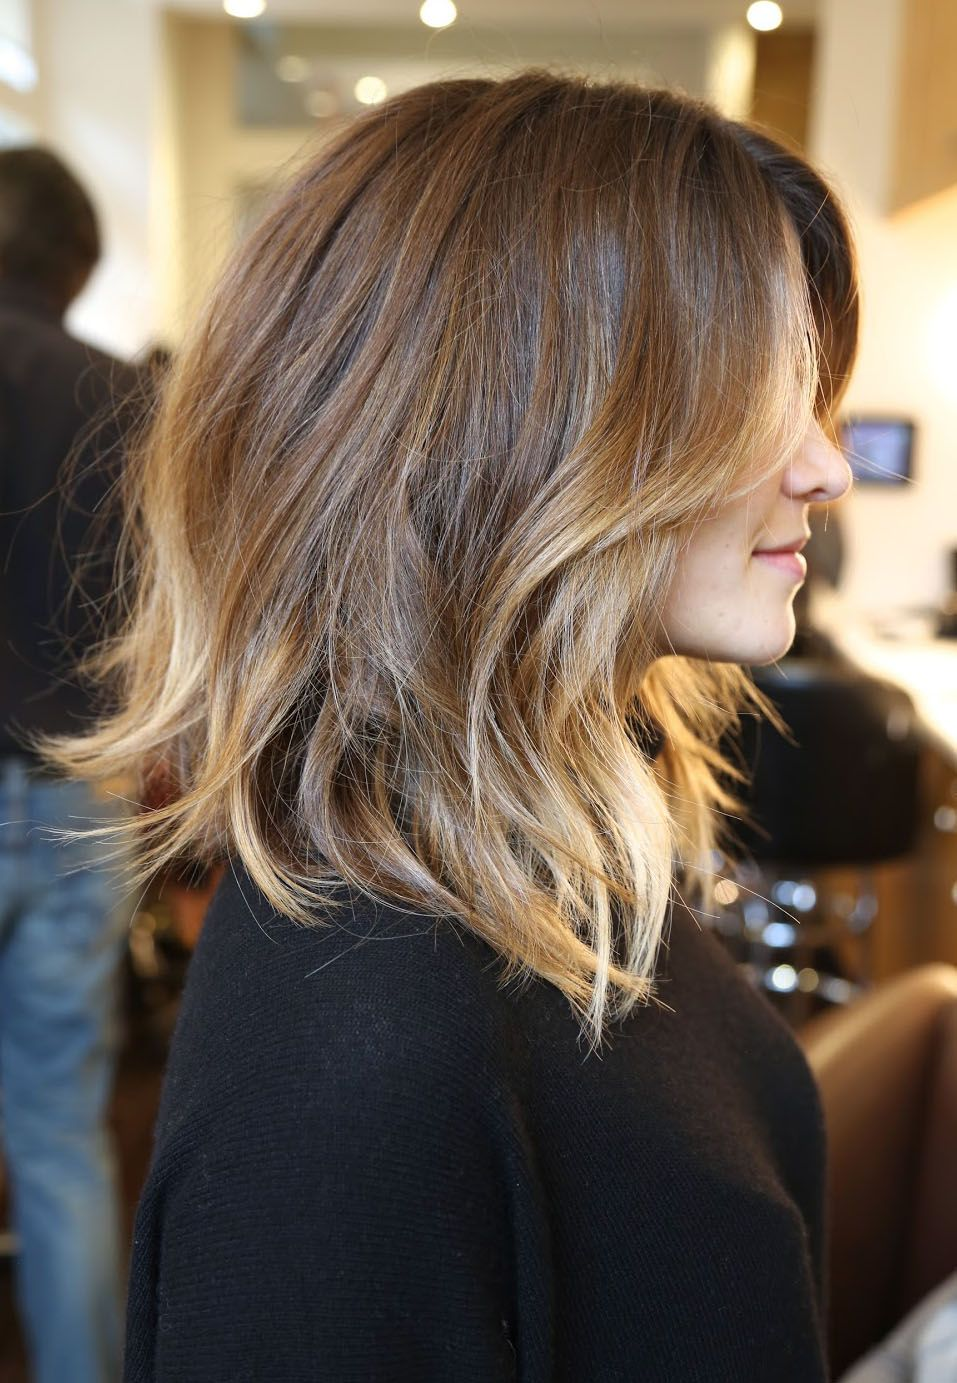 love the length, gentle wave, and of course, the ombre colour